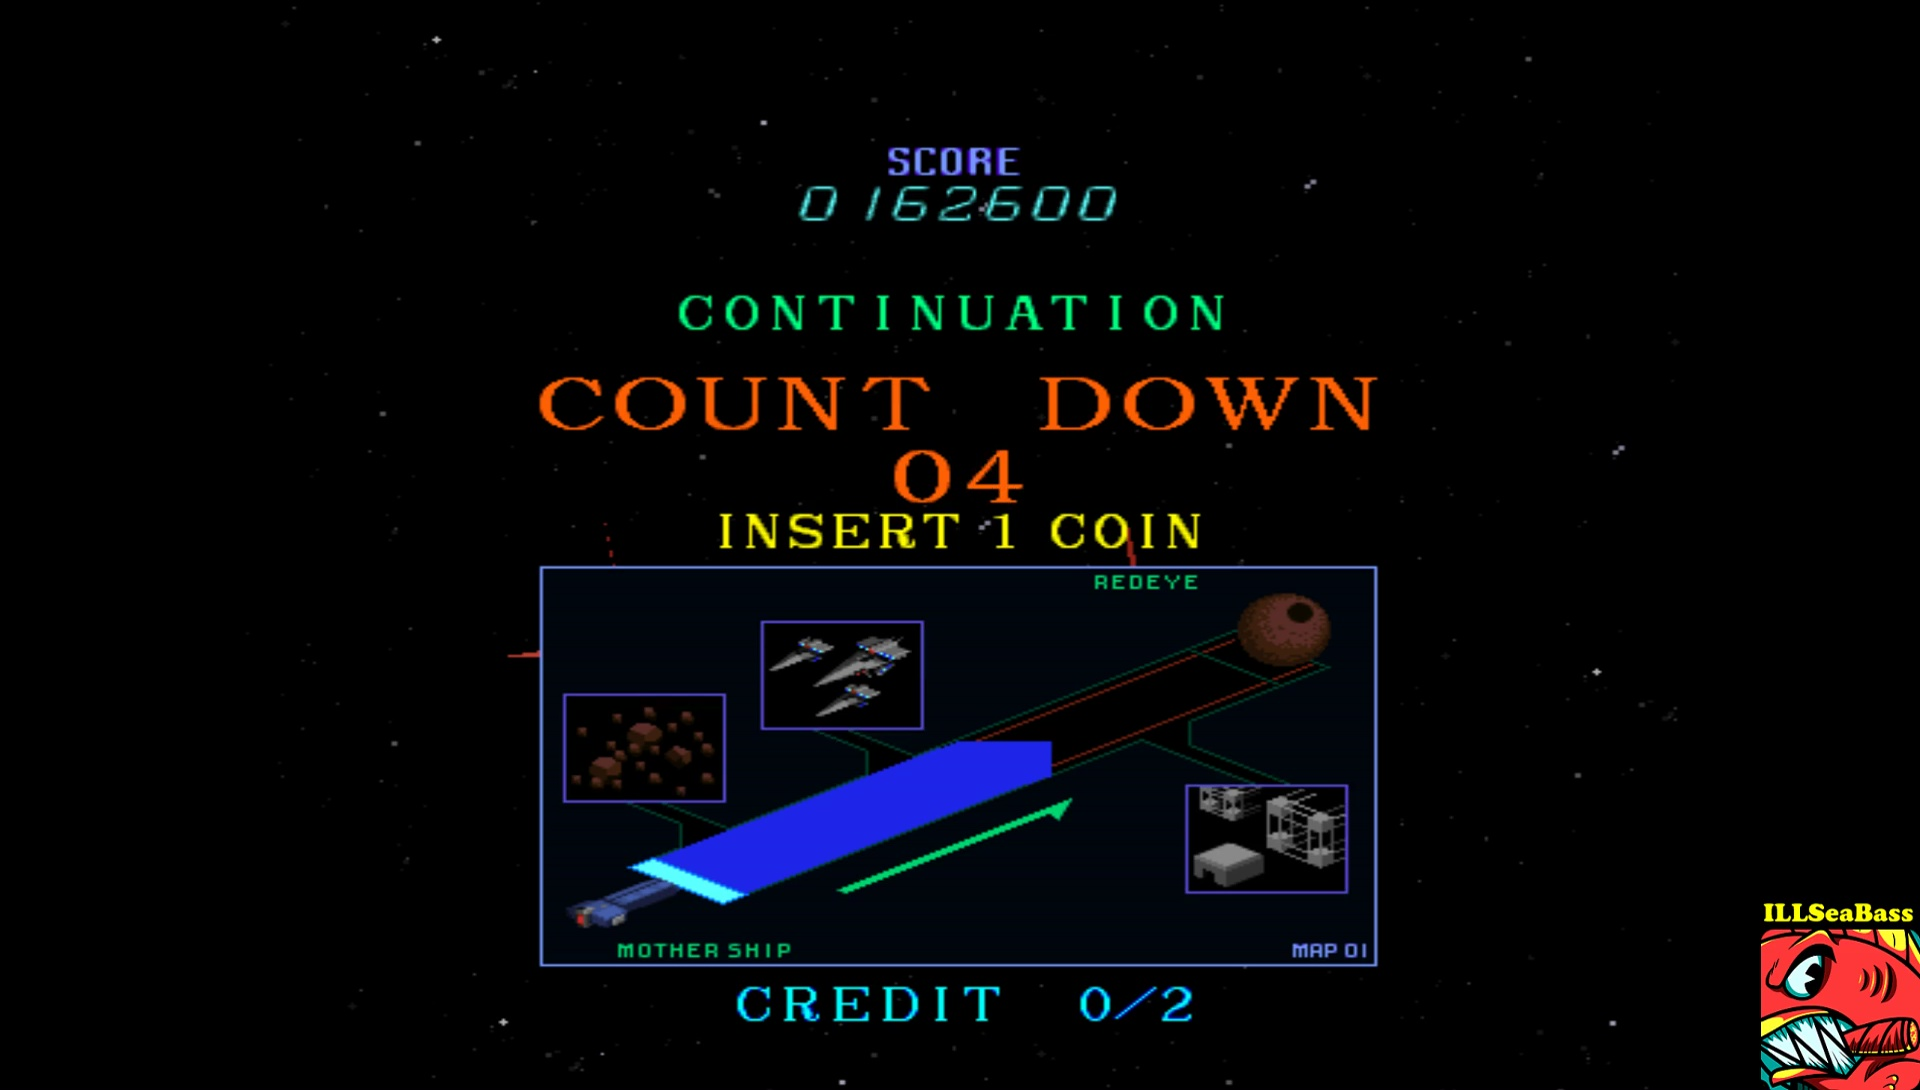 ILLSeaBass: Starblade [starblad] (Arcade Emulated / M.A.M.E.) 162,600 points on 2017-05-28 21:56:21